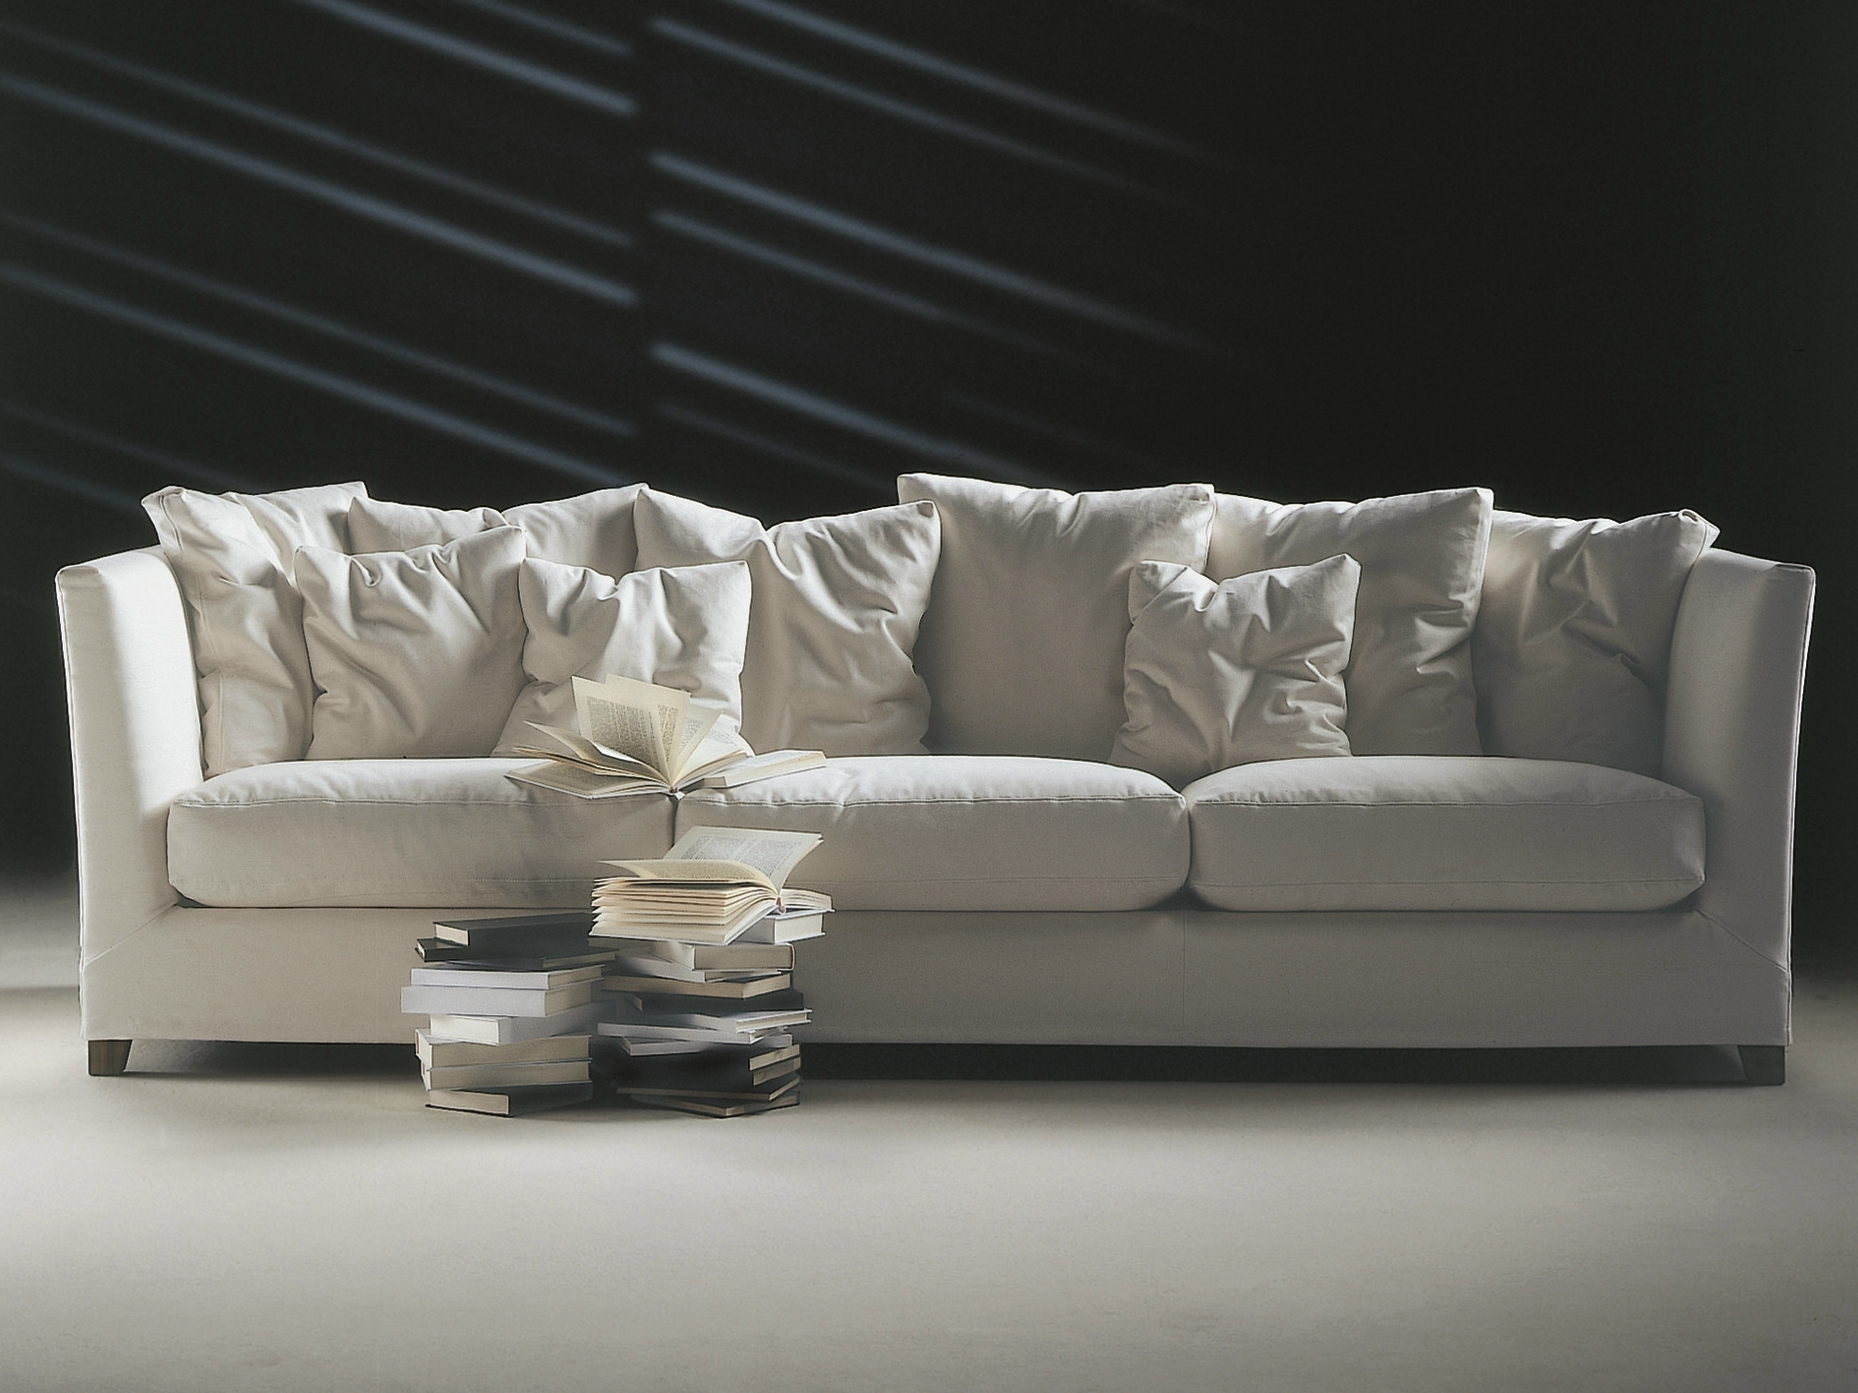 Current Sofas With Removable Covers Inside Sofa Design: Sofa With Removable Cover Soft Style Fabric Sofas (View 10 of 15)